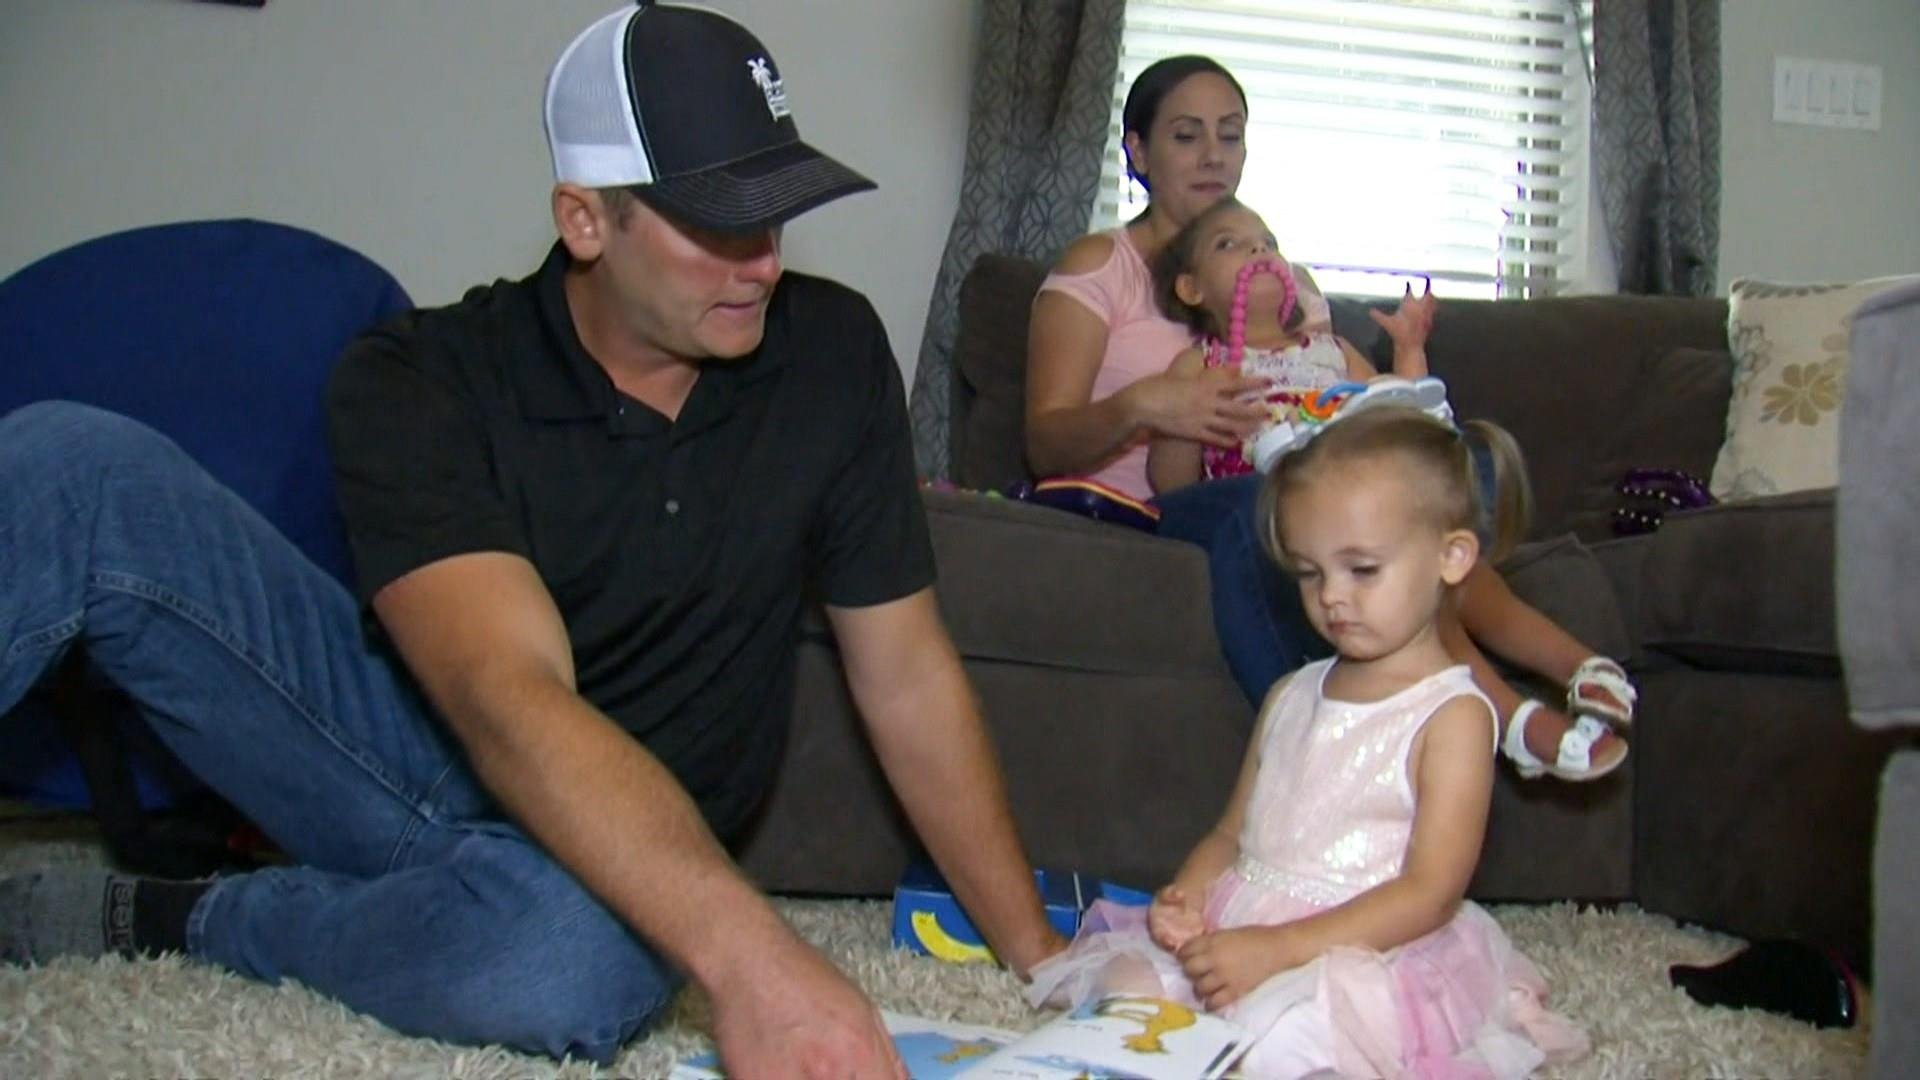 Couple Considers Divorce To Help Pay Daughter's Medical Bills